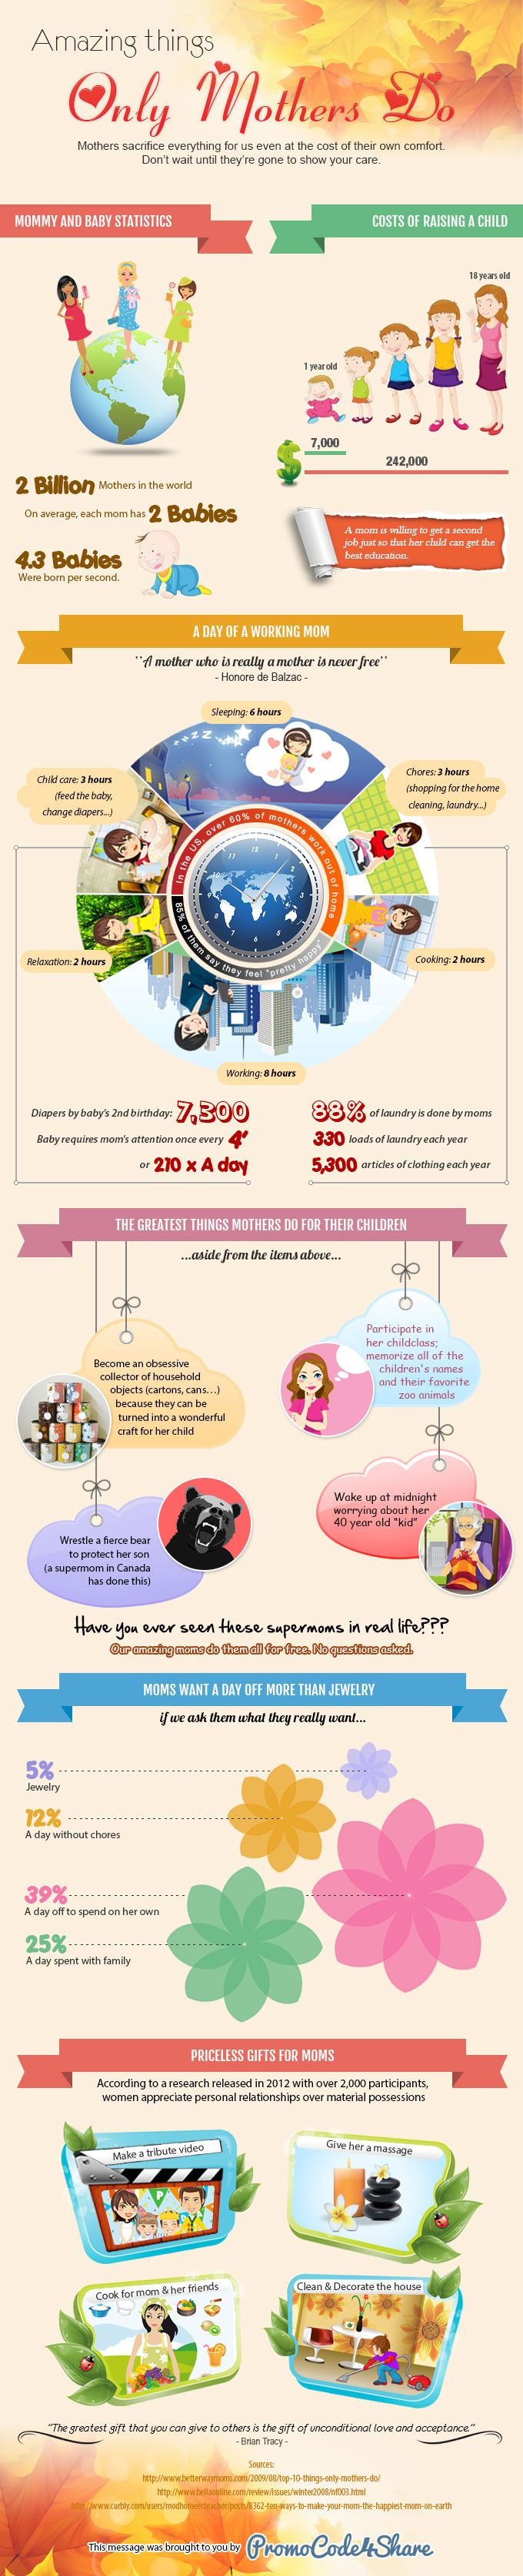 Amazing Things Only Our Moms Do [#infographic] #mothers